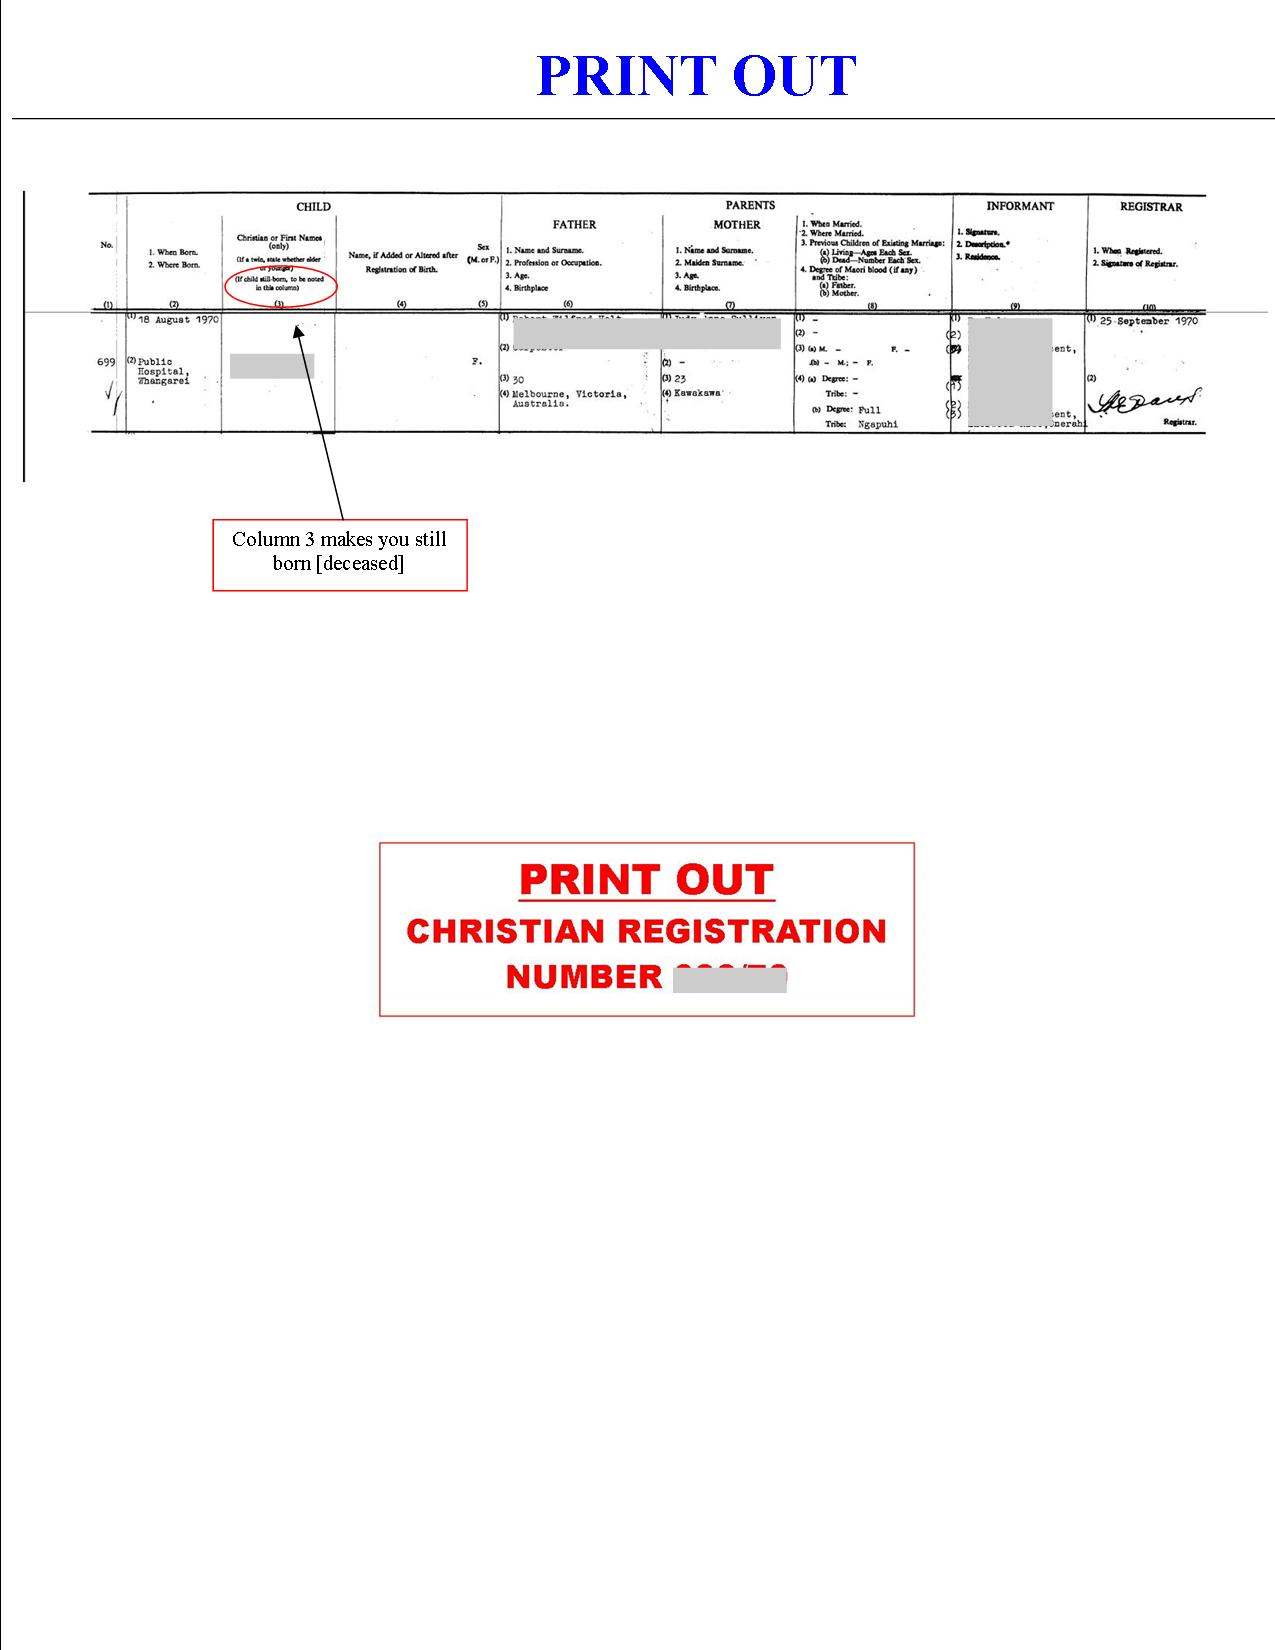 us birth certificate application form